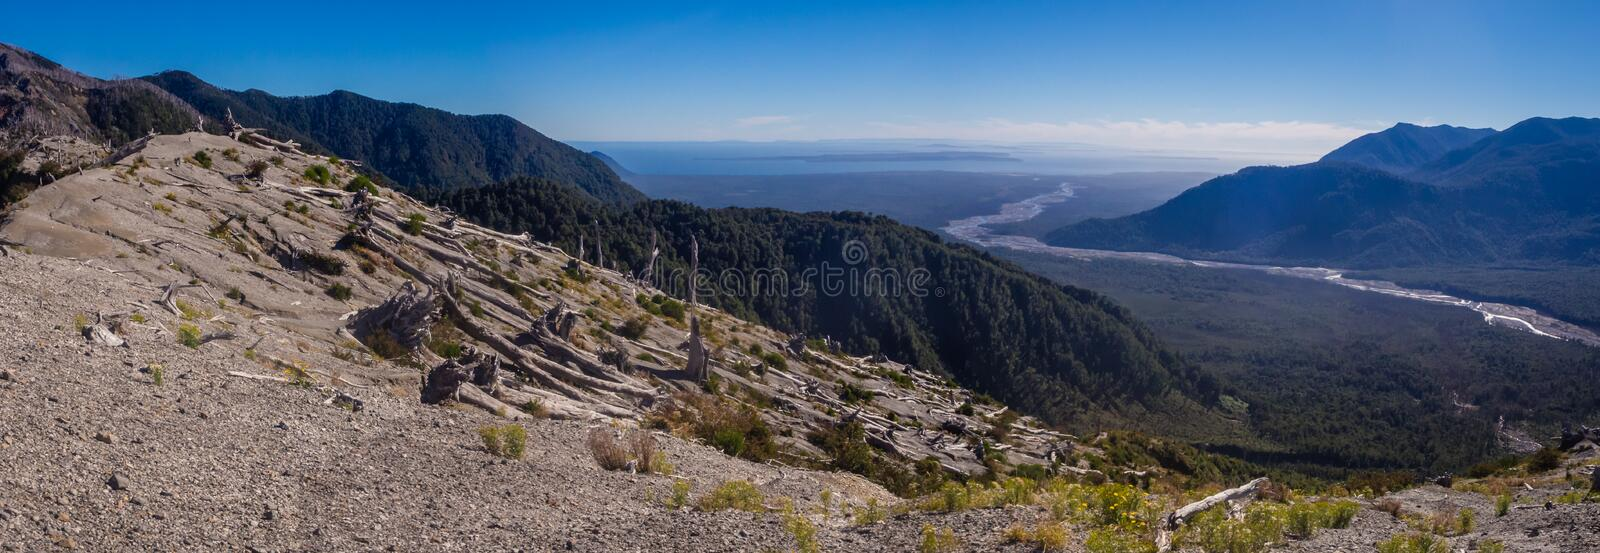 Panoramique du haut du volcan de Chaiten dans le patagonia, Chili photos stock